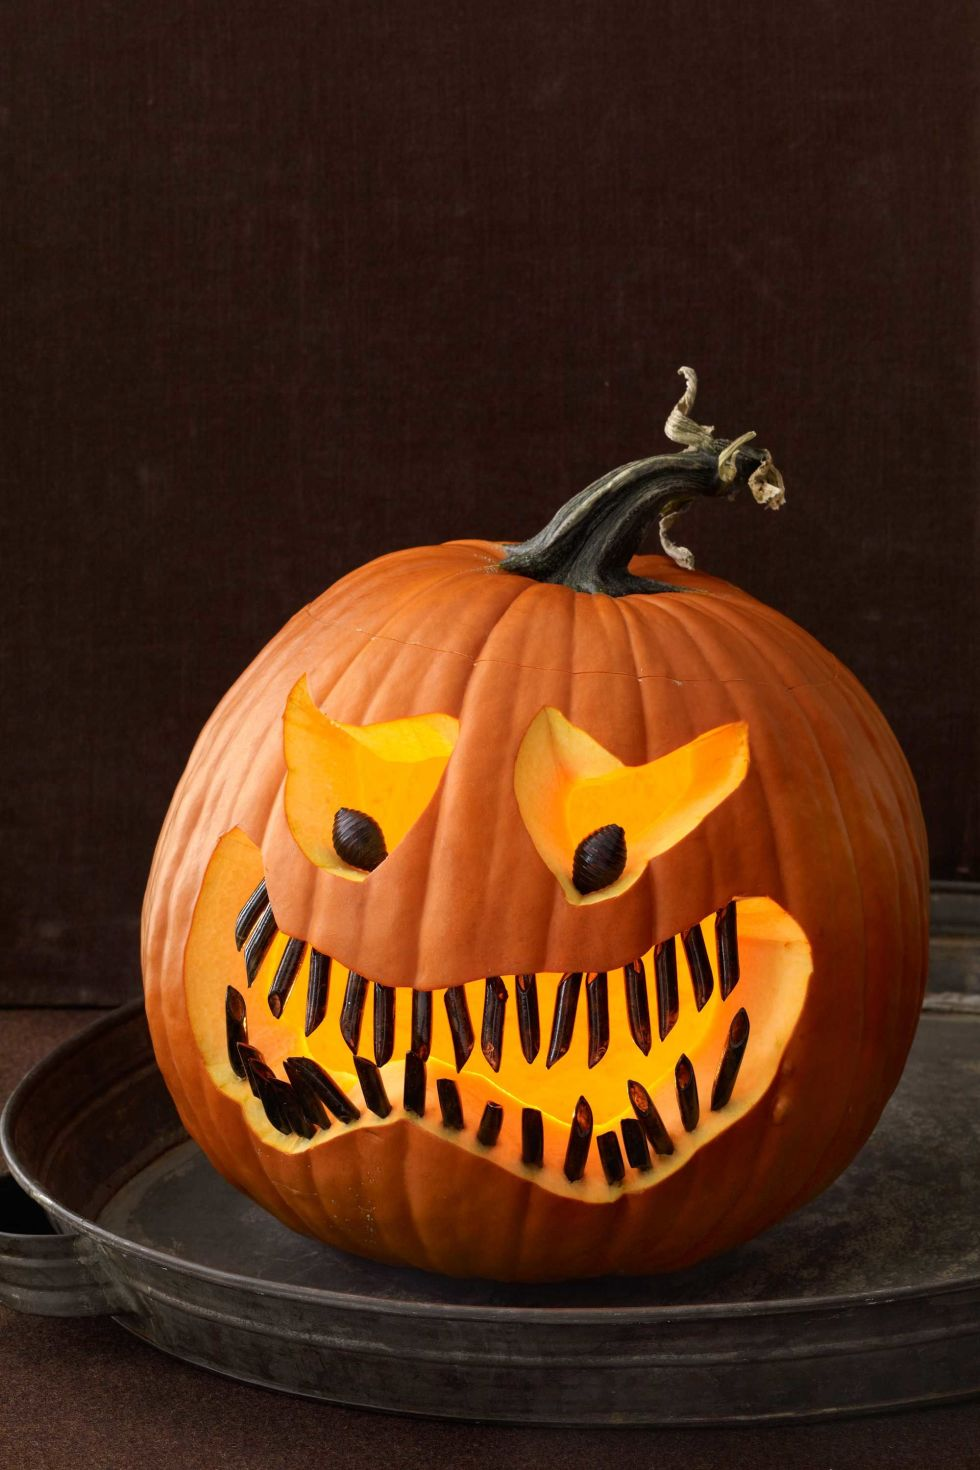 65 best pumpkin carving ideas halloween 2017 creative jack o lantern designs - Pumpkin Halloween Carving